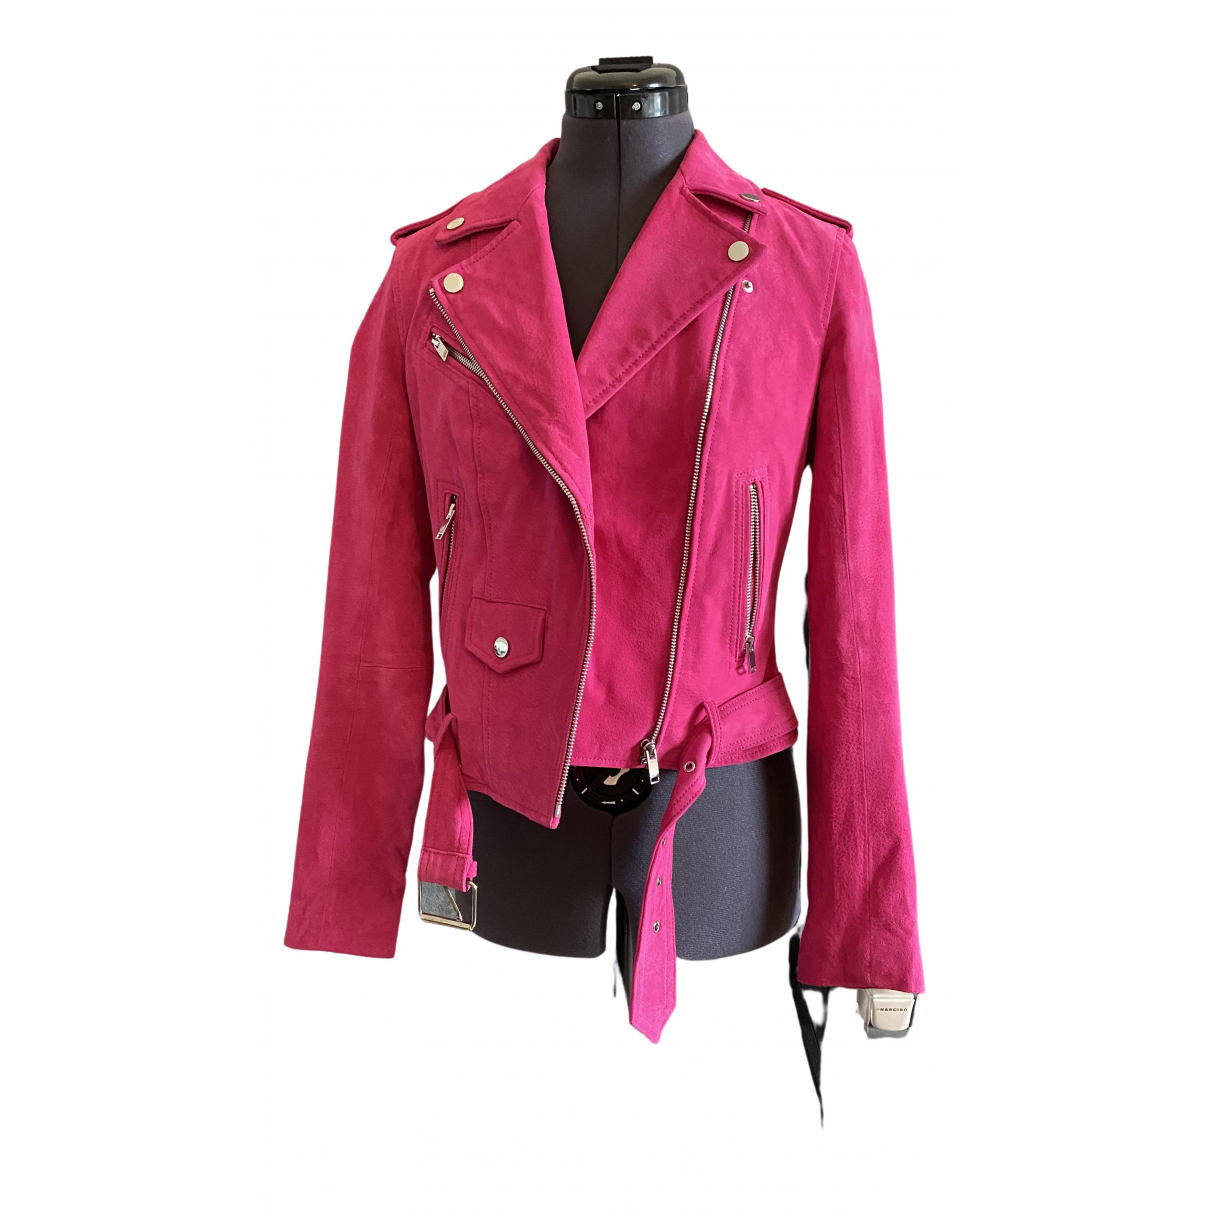 River Island \N Pink Suede Leather jacket for Women 8 UK